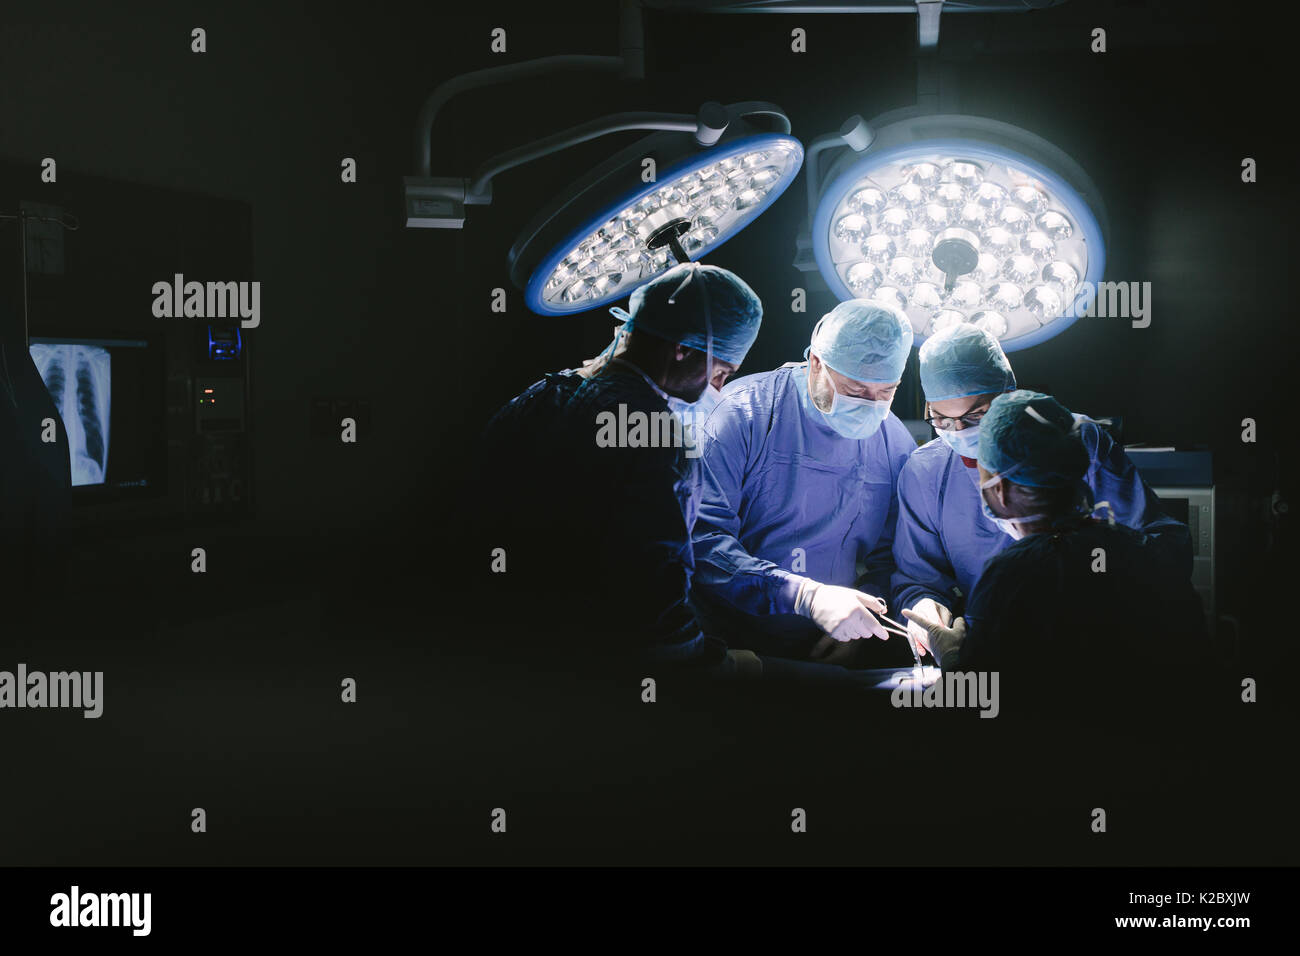 Medical team performing surgery. Group of surgeons in hospital operation theater. - Stock Image